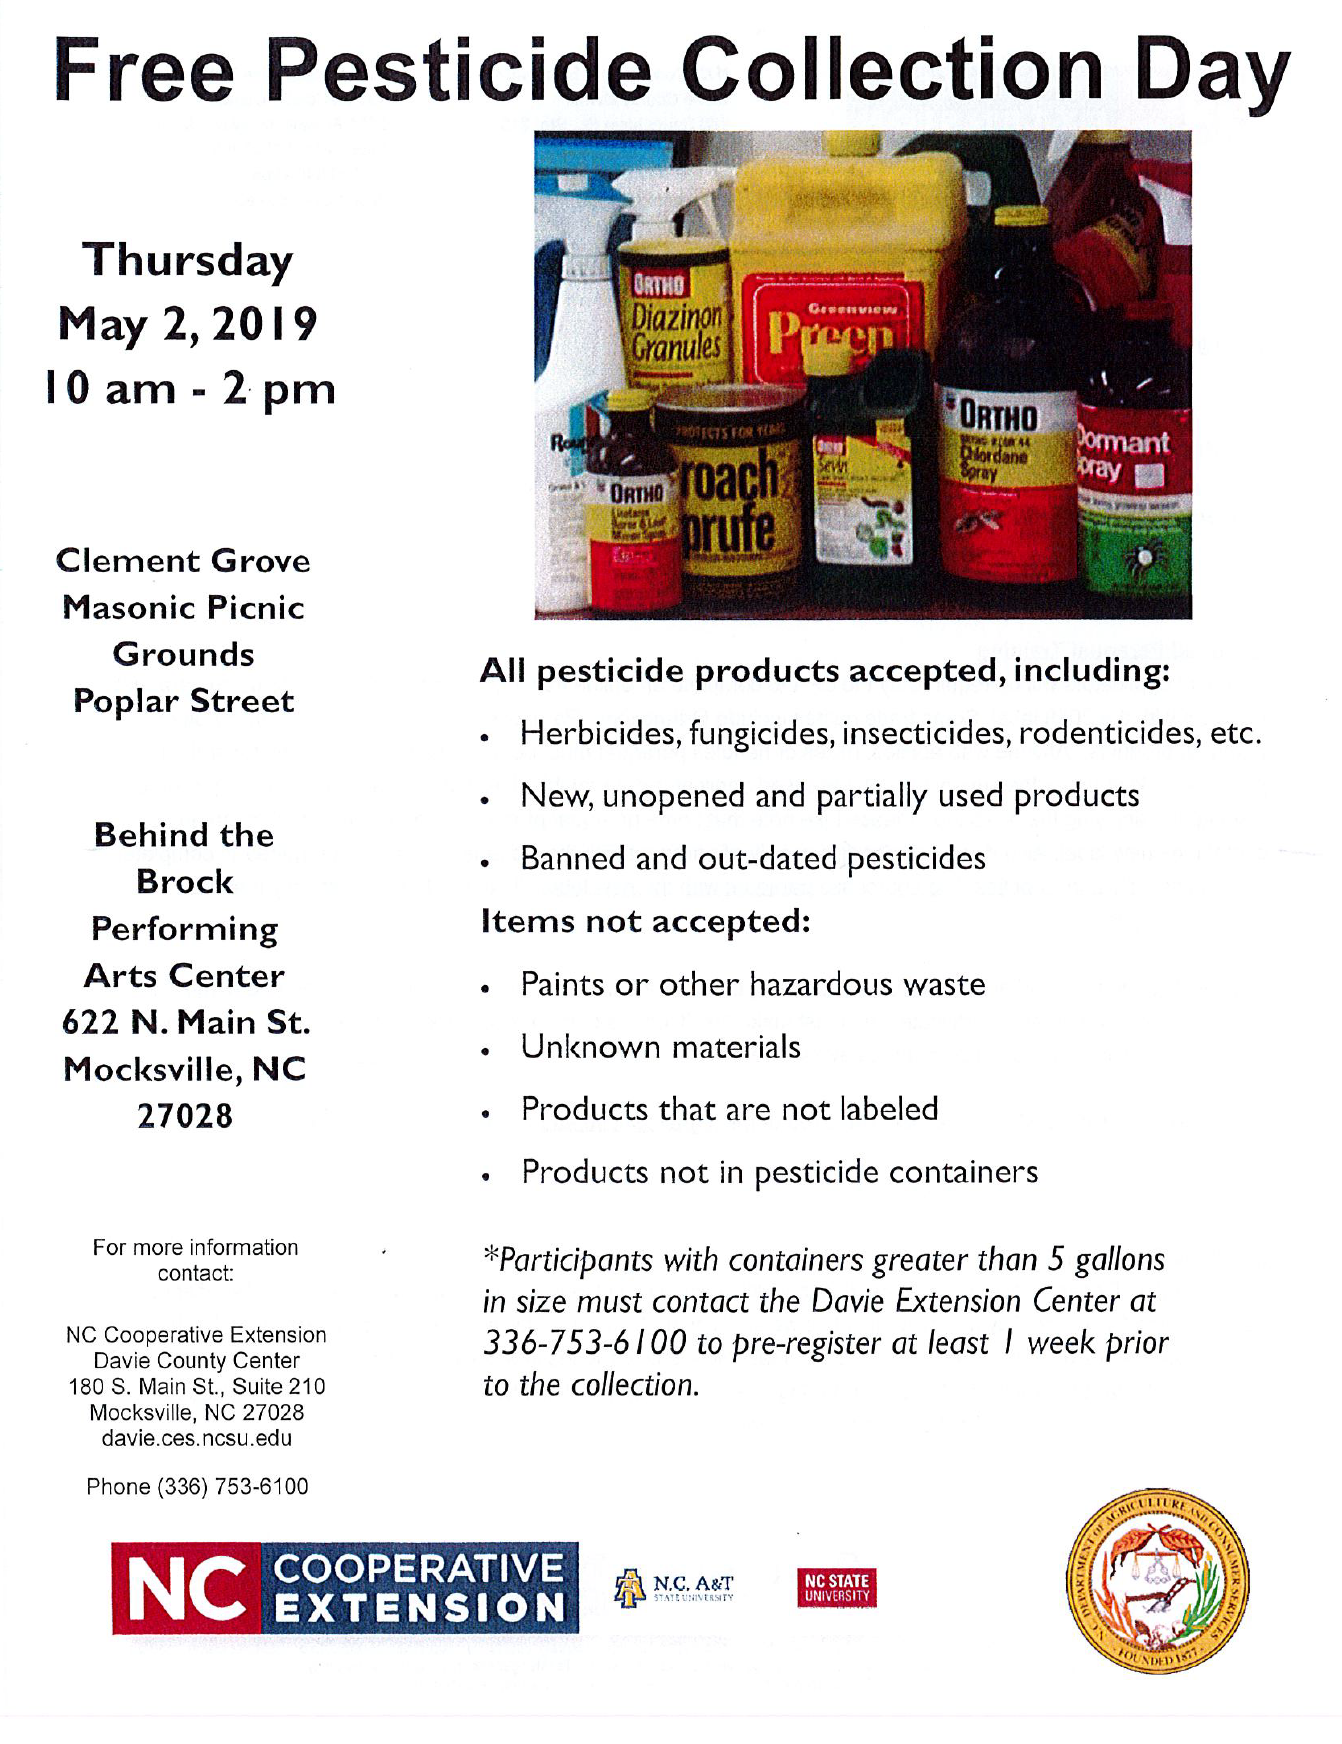 Pesticide Collection Day flyer